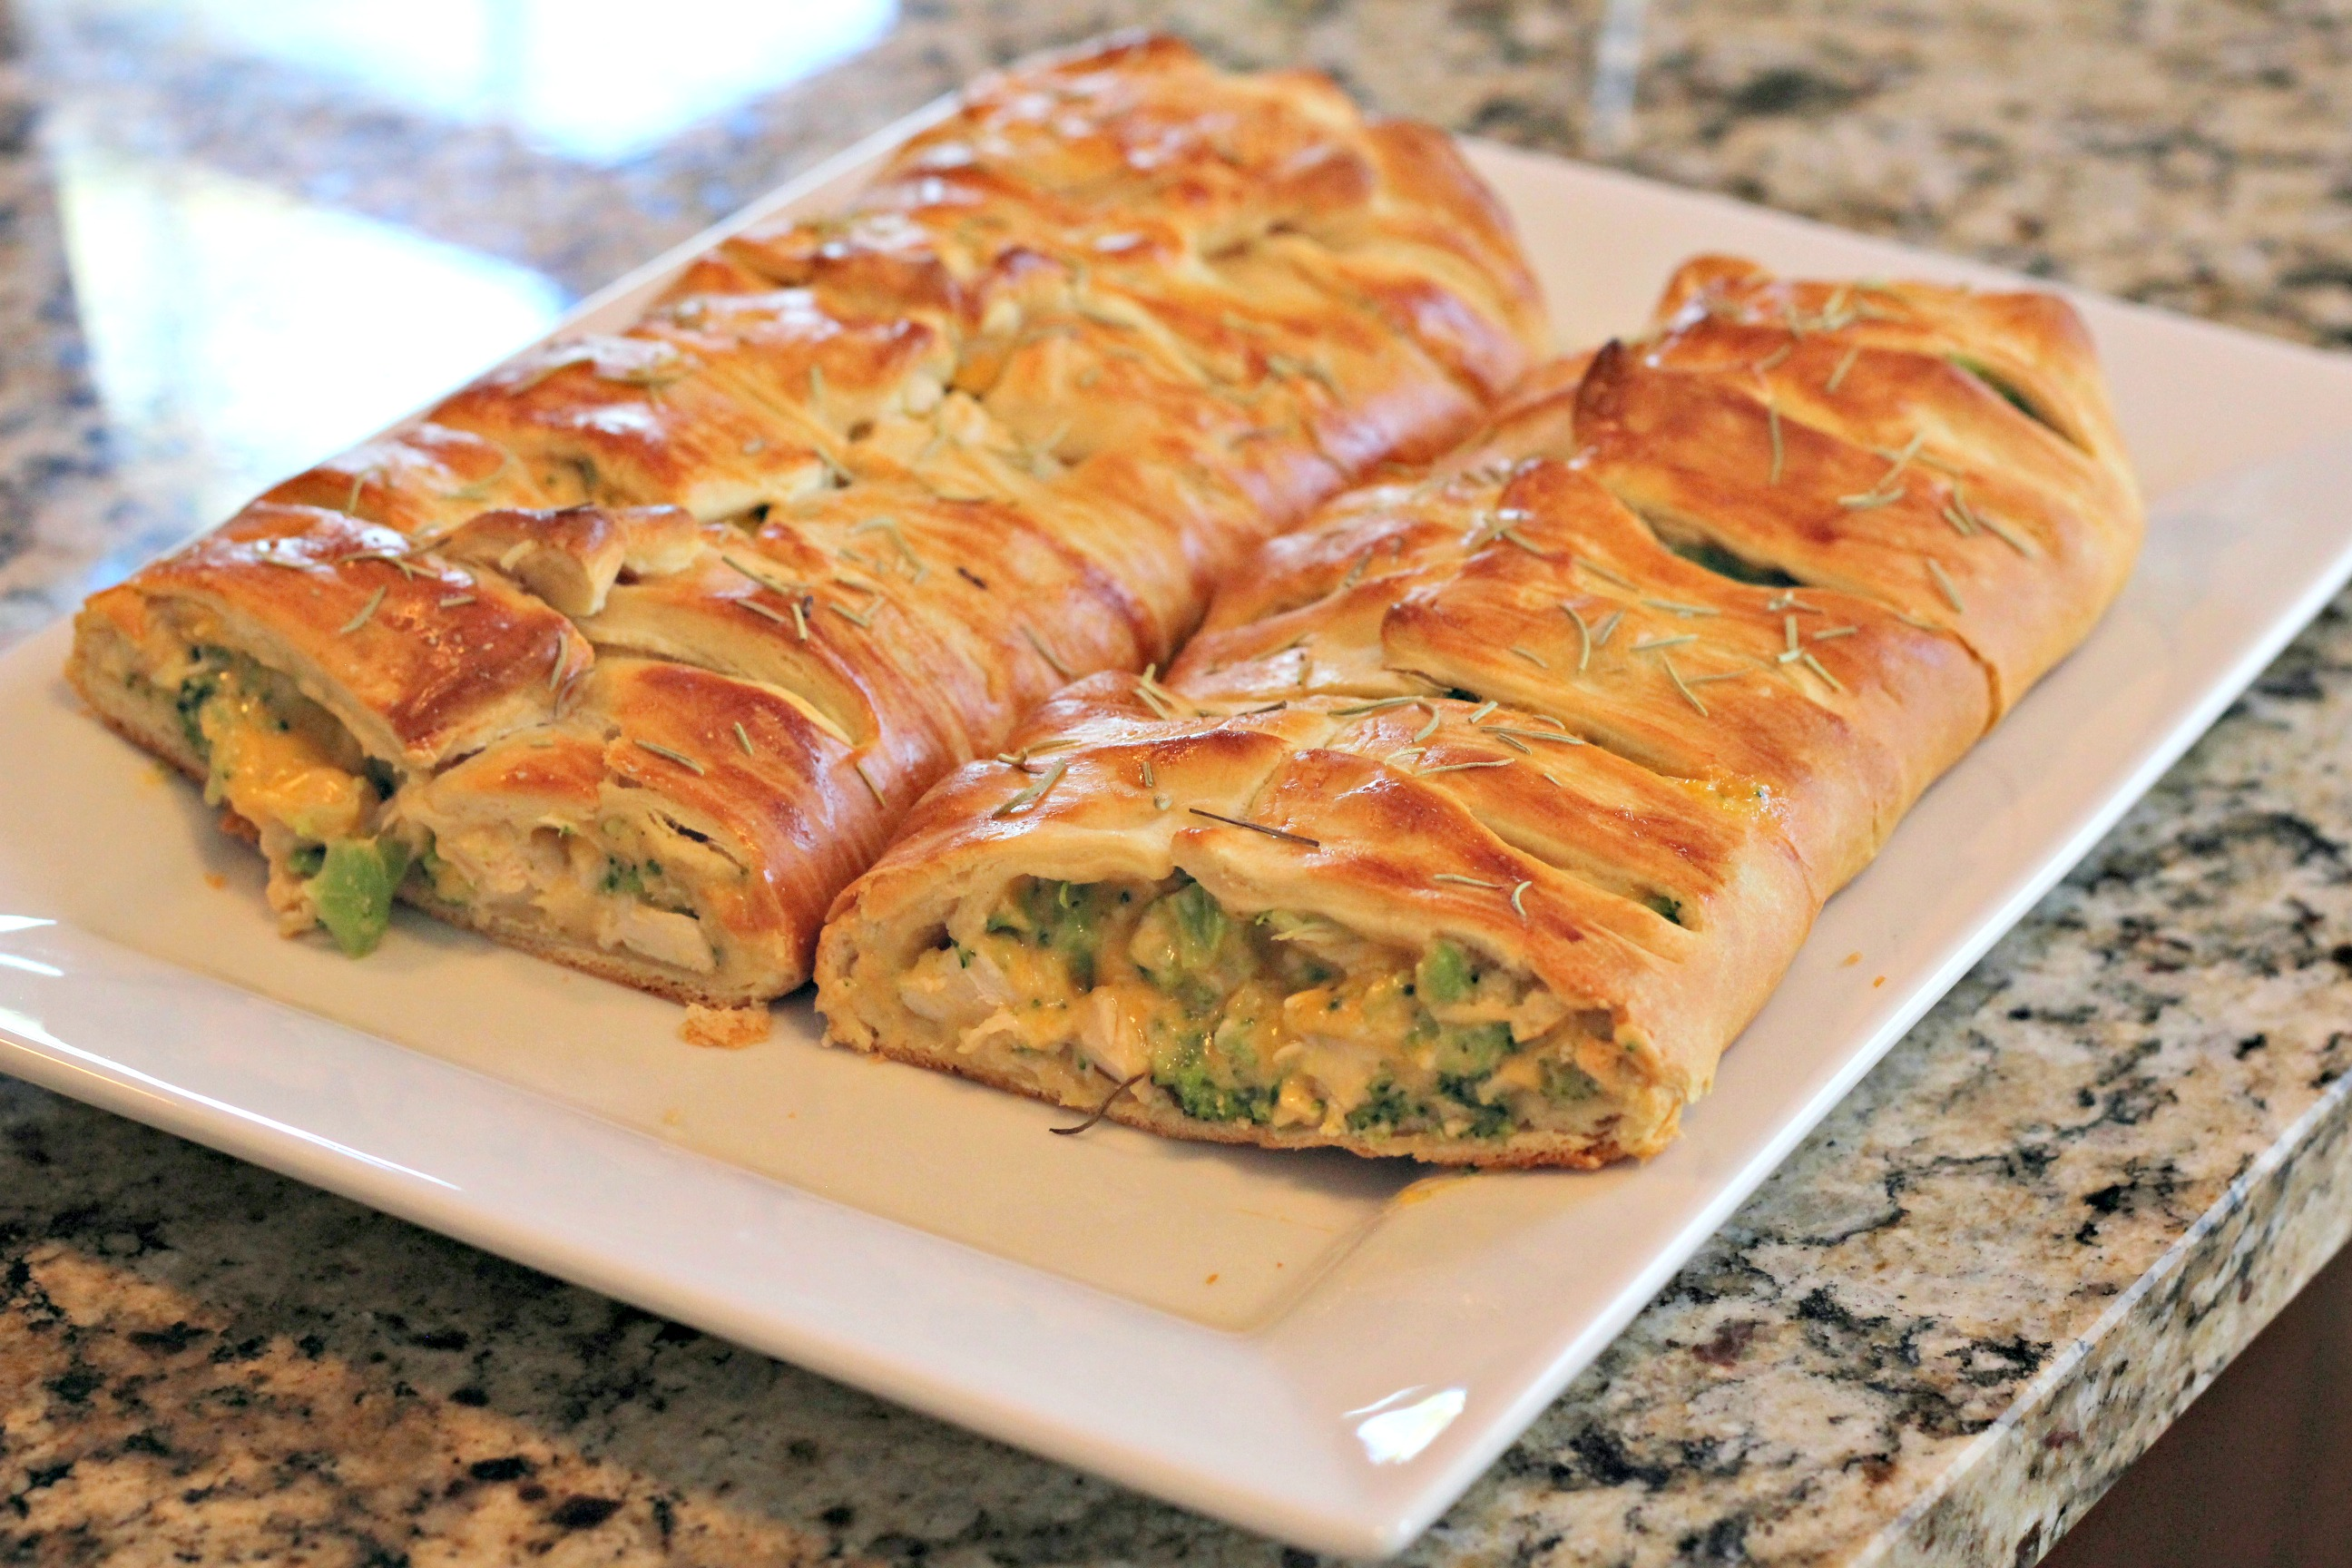 Broccoli-Cheddar Chicken Braid